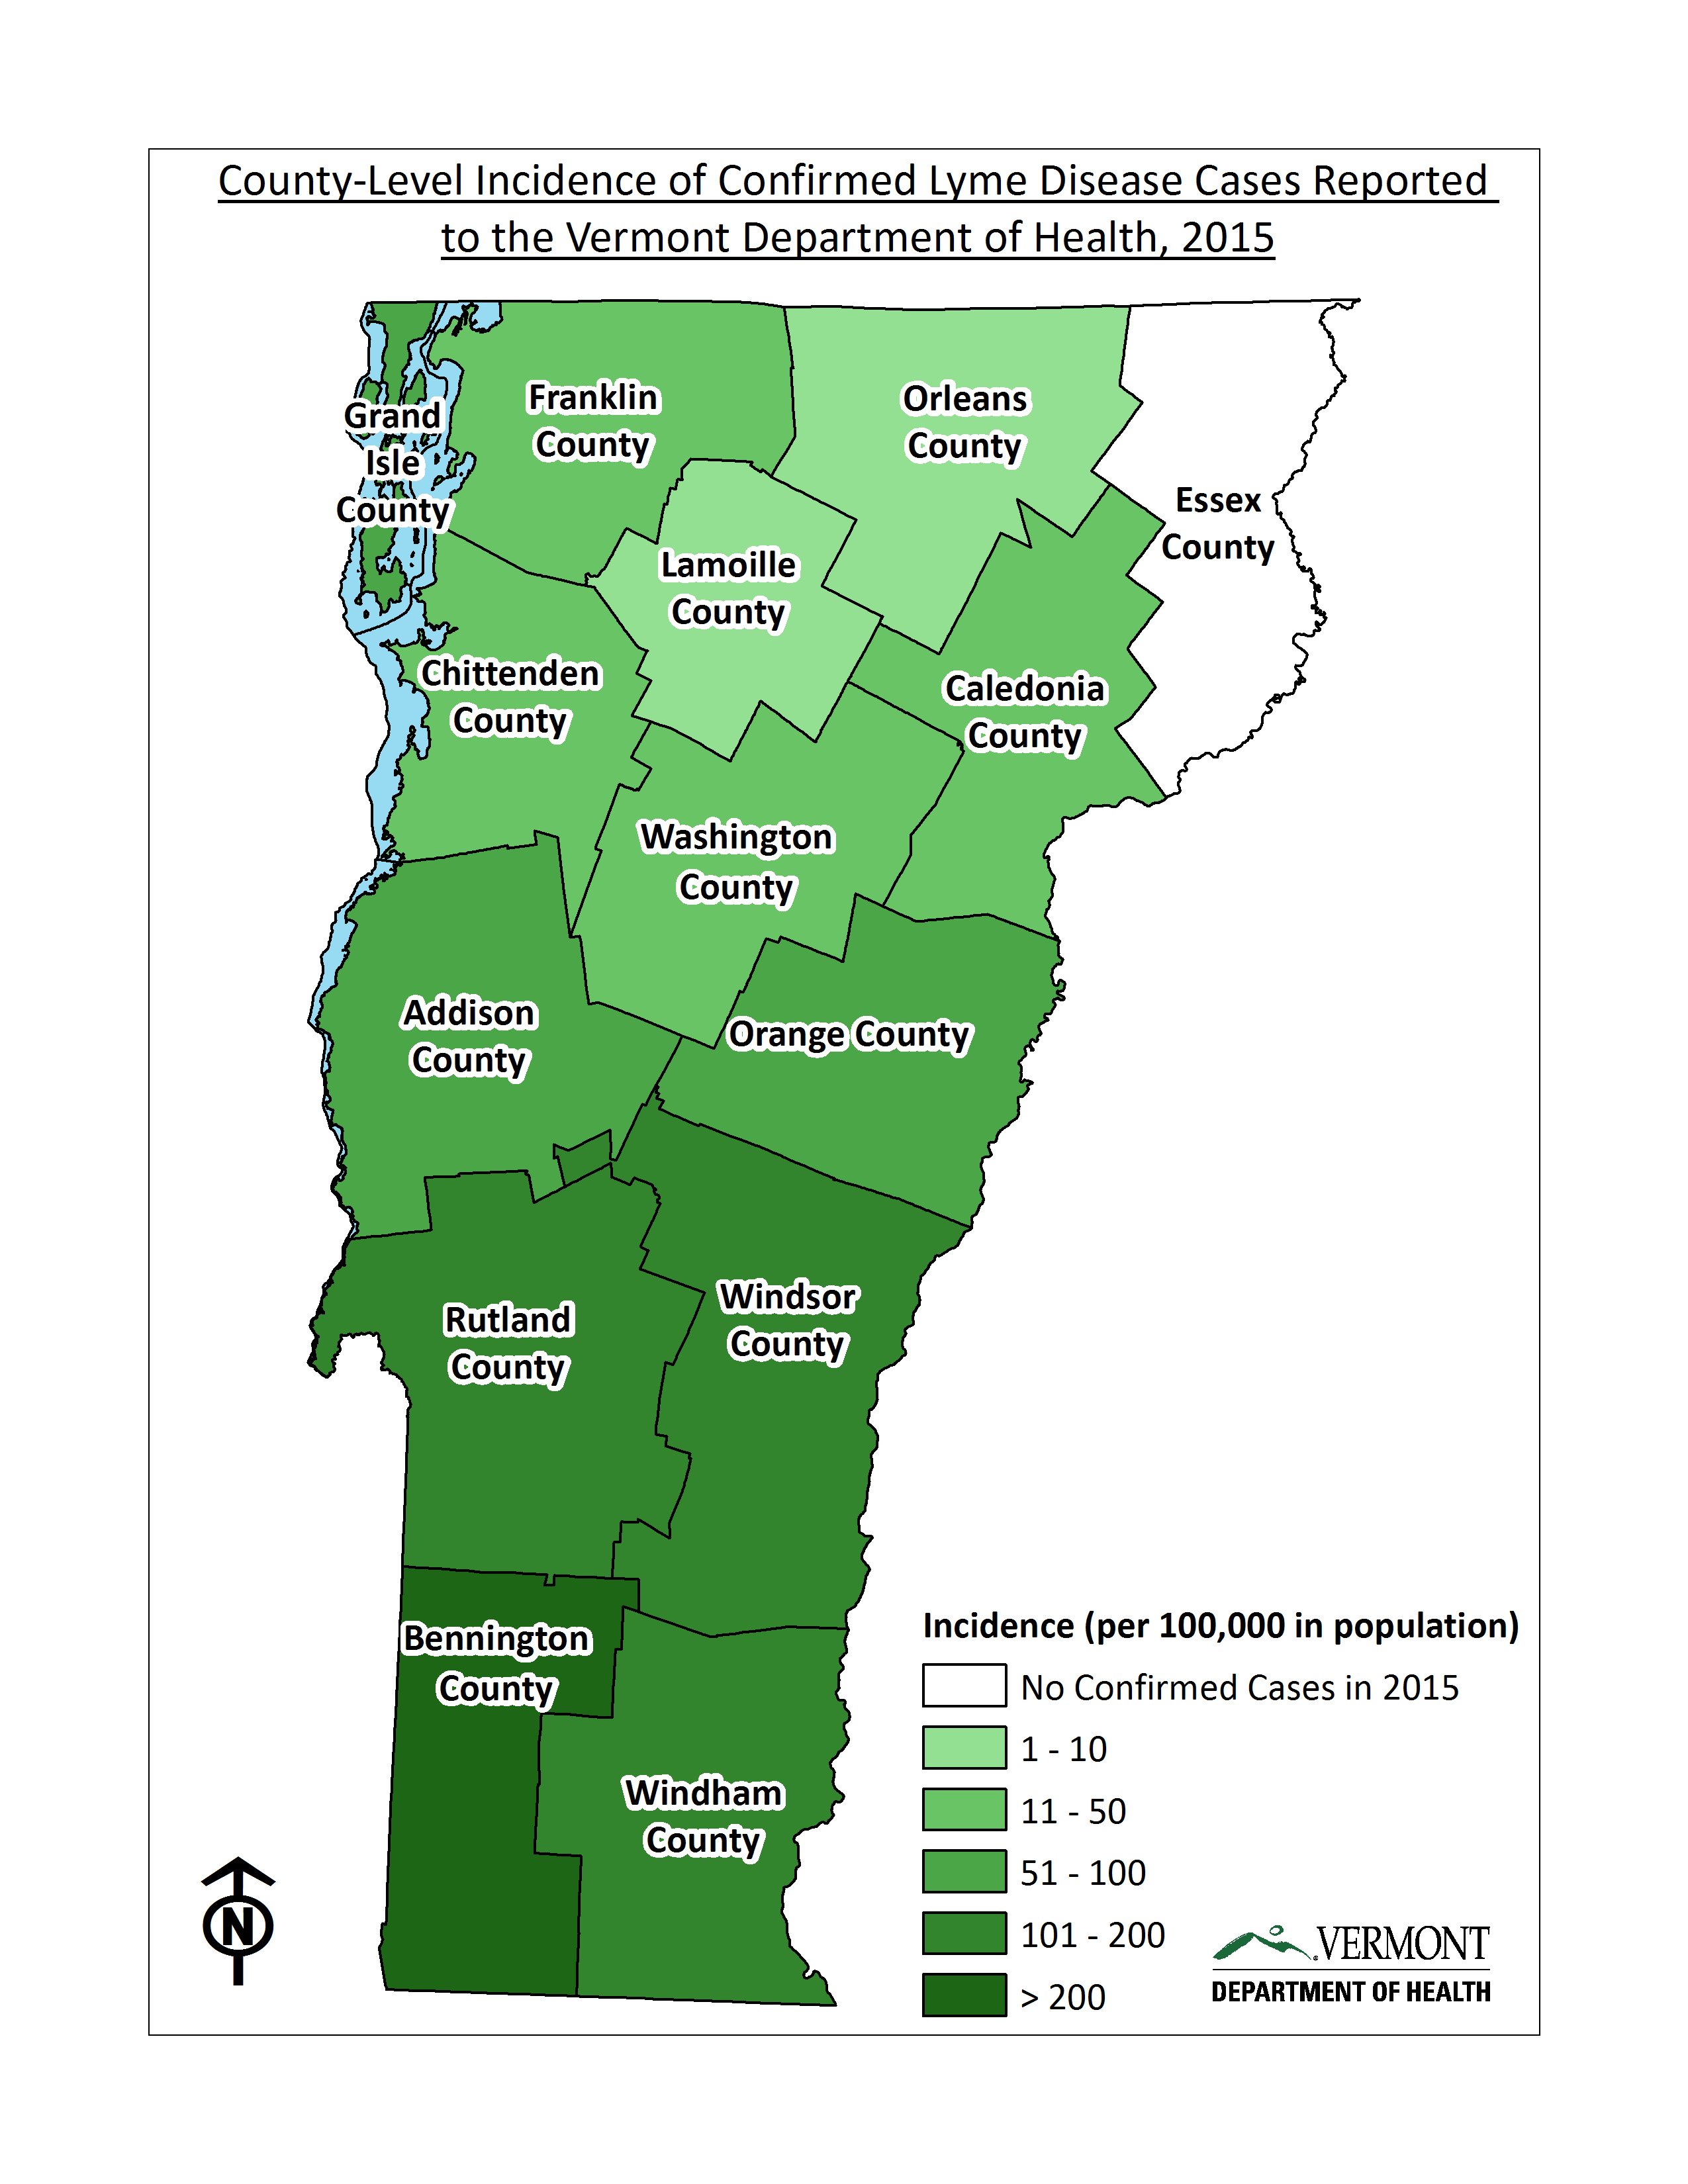 County-level incidence of confirmed Lyme disease cases reported to the Vermont Department of Health, 2015.